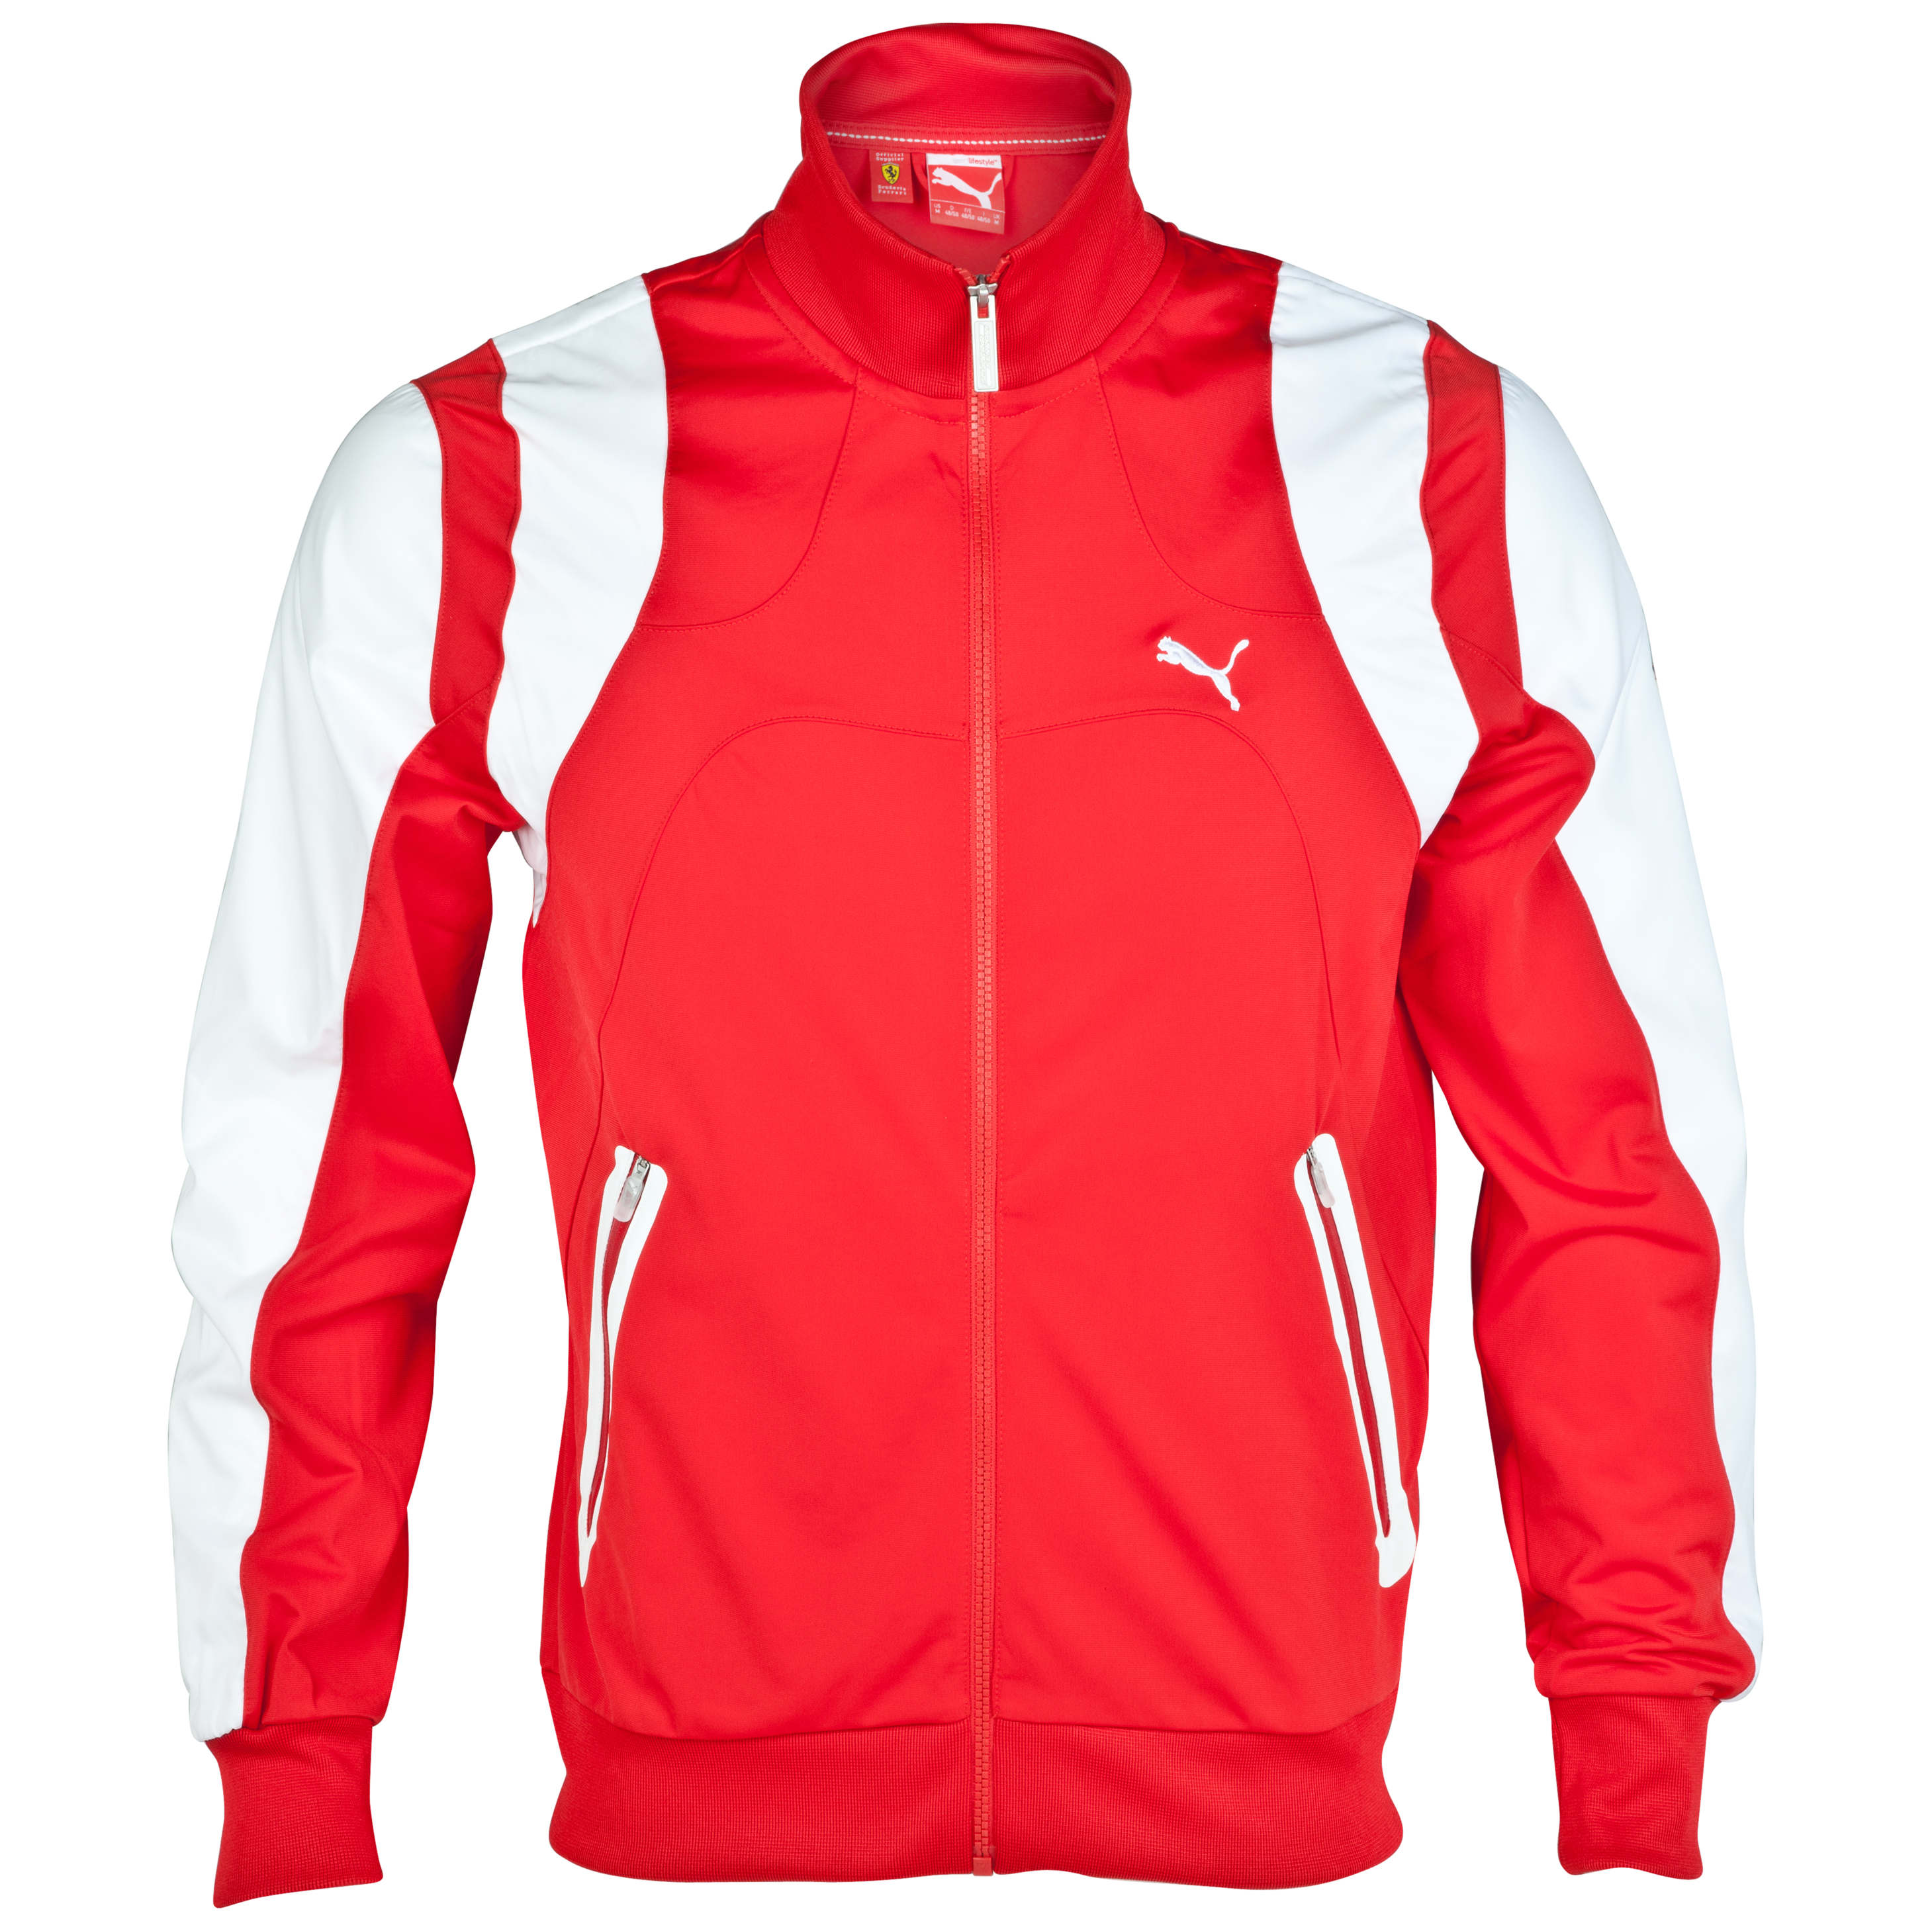 Scuderia Ferrari Track Jacket - Rosso Corsa